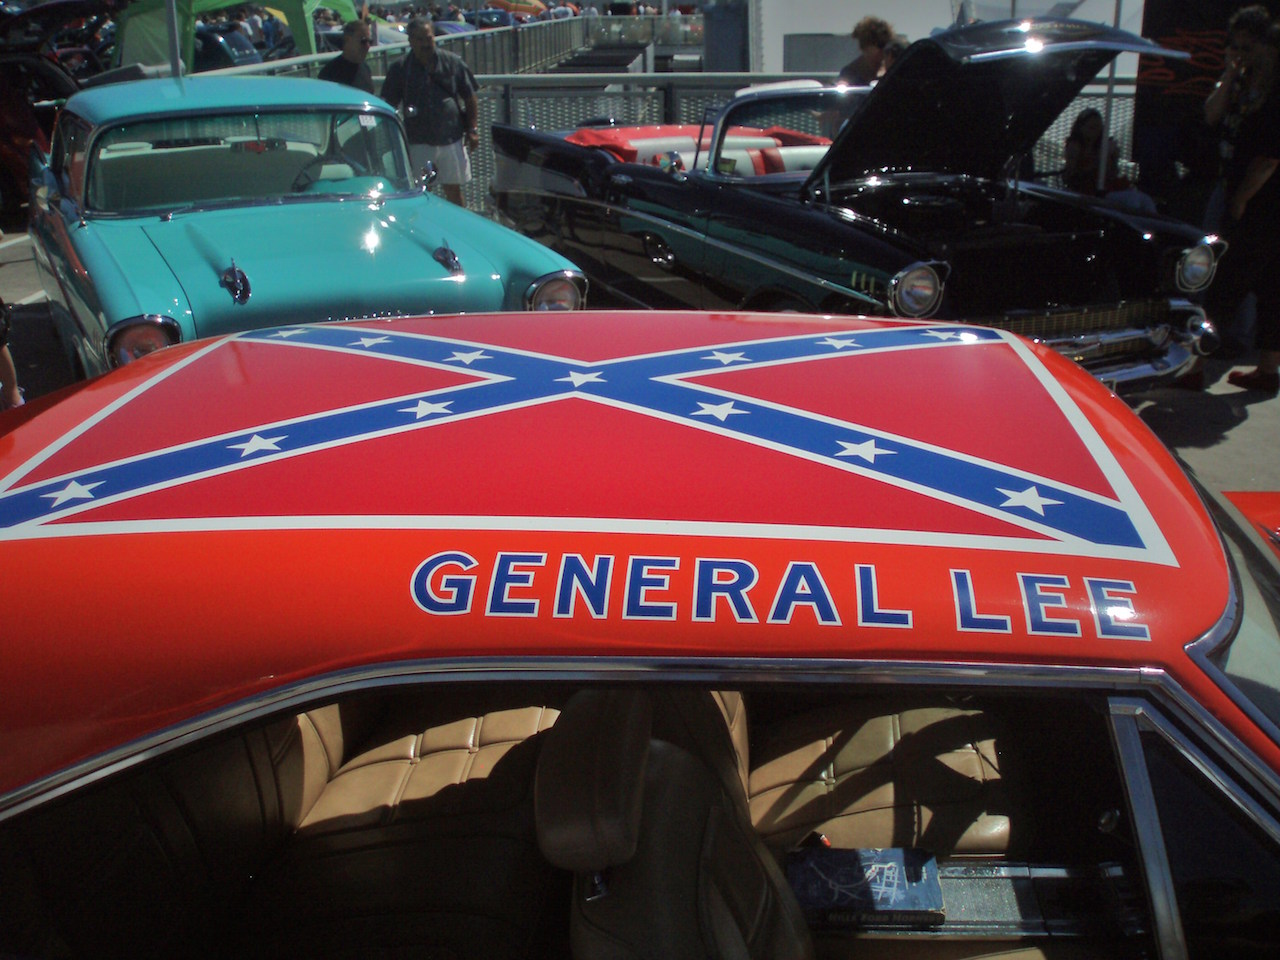 The Confederate Flag on the roof of the General Lee. (photo by sv1ambo, via Wikimedia Commons)